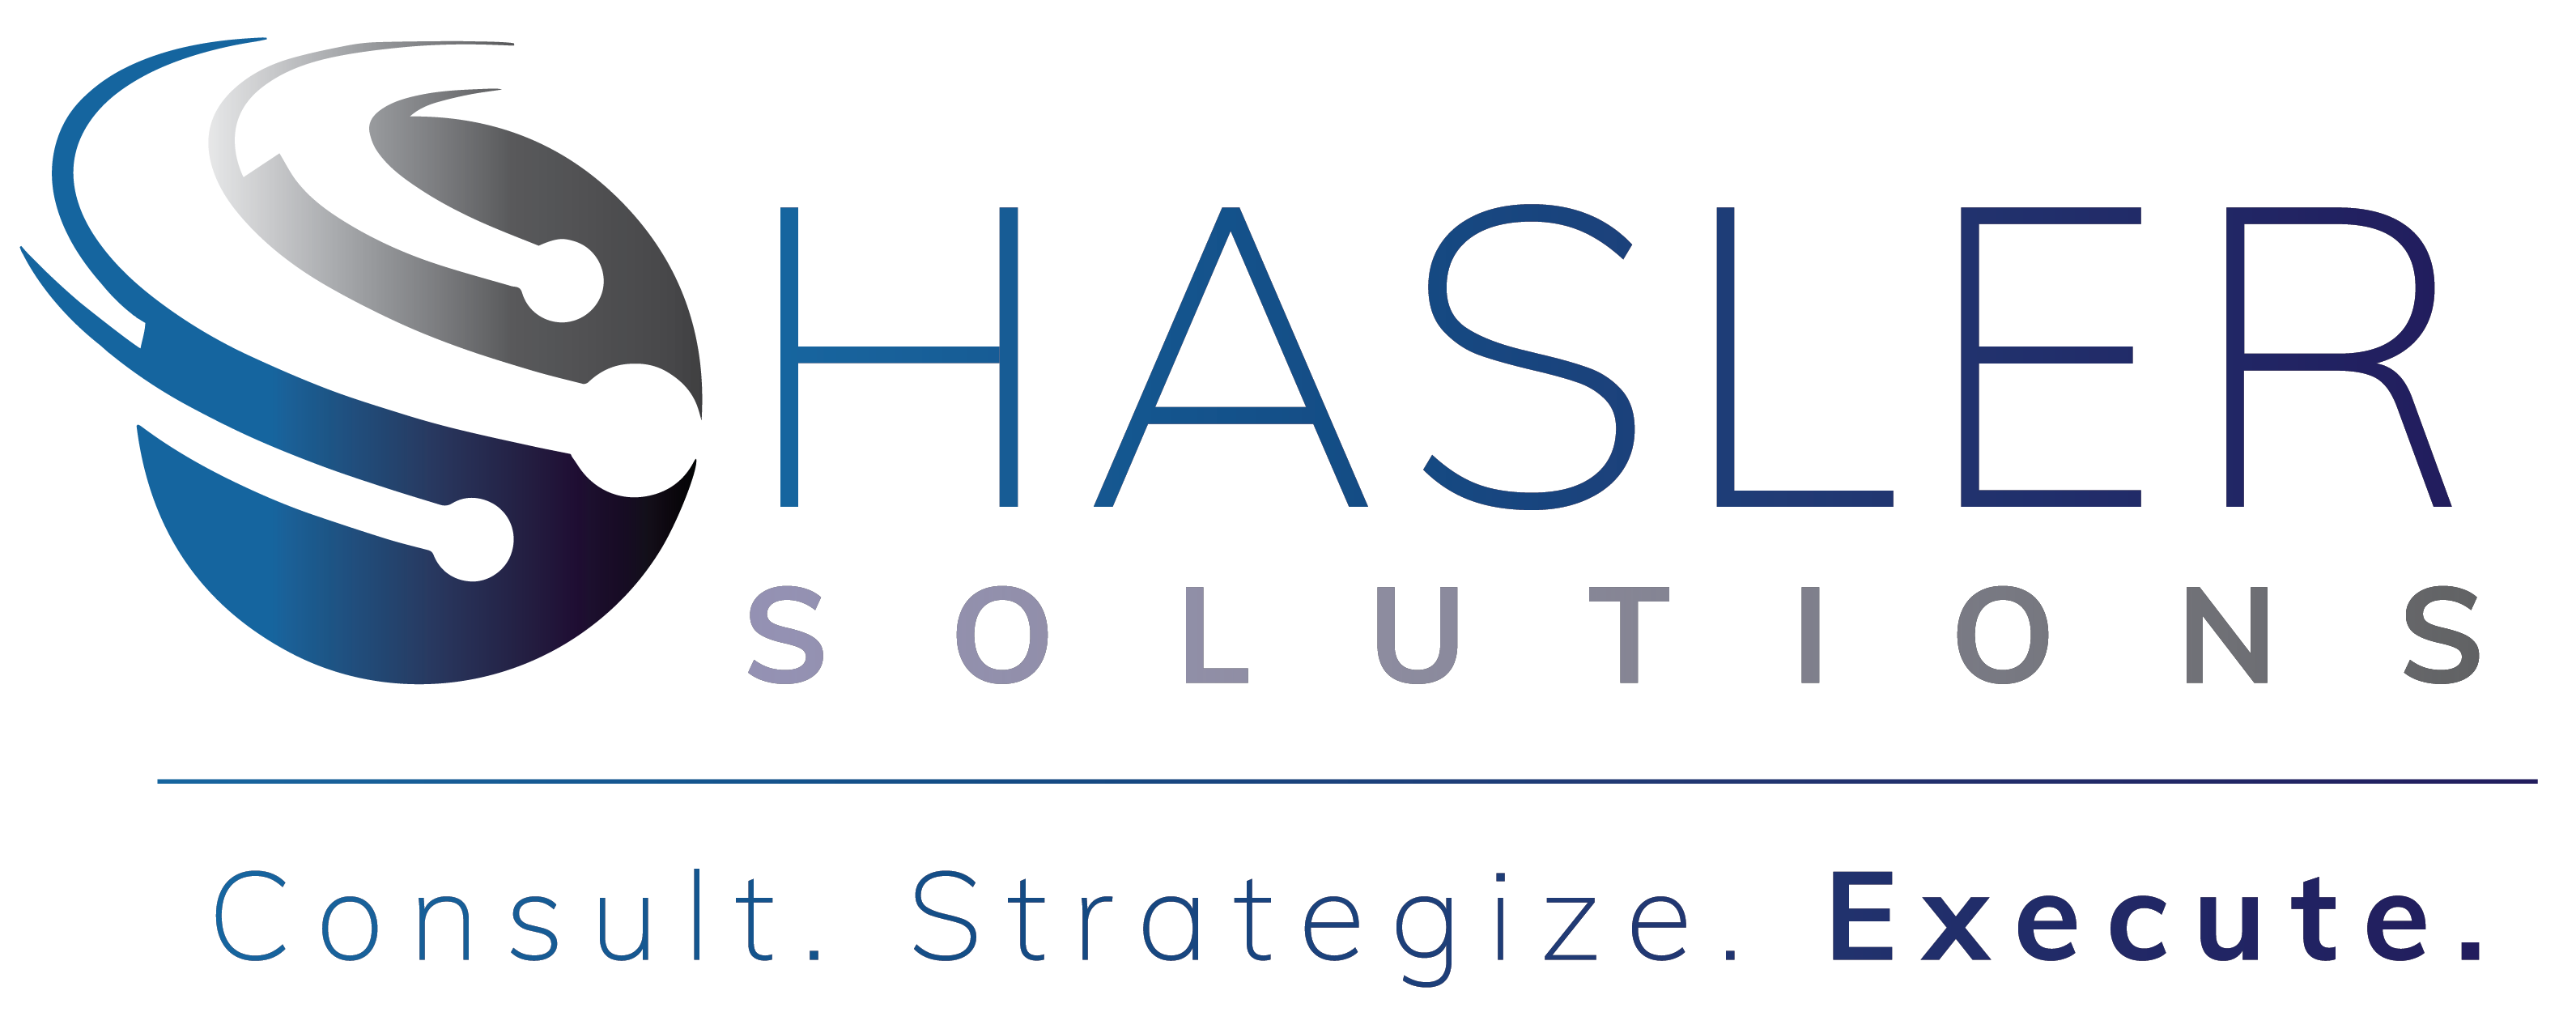 Read Hasler Solutions Reviews